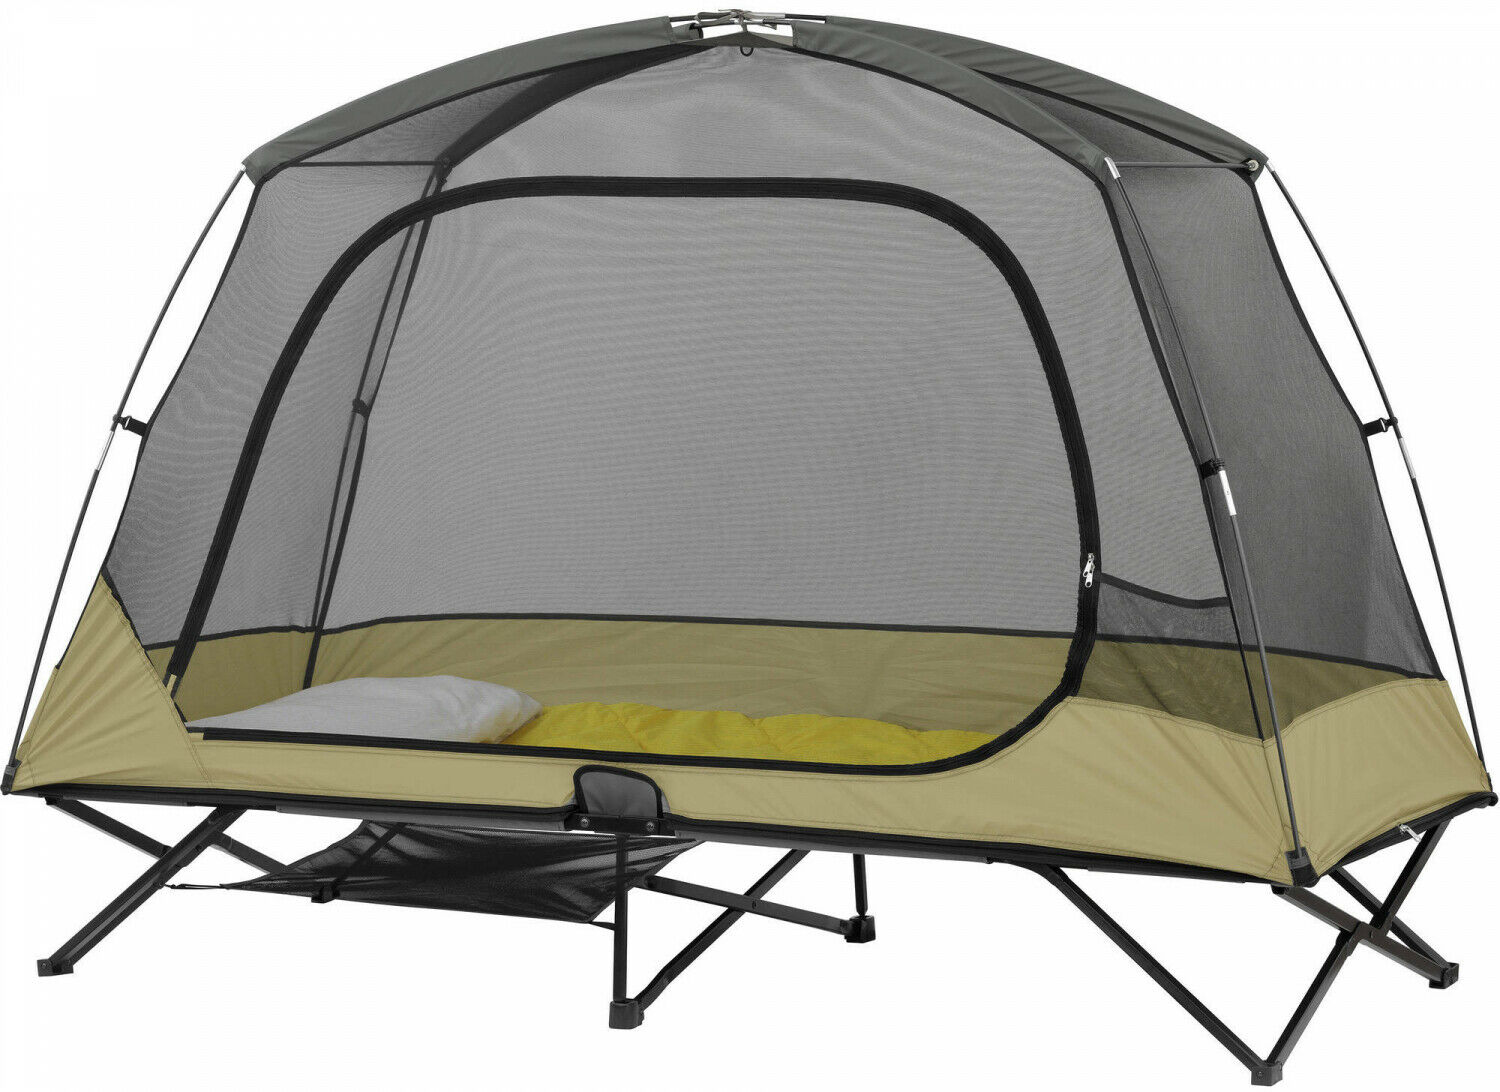 Ozark Trail OnePerson Padded Cot Tent all'aperto campeggio Gear Loft Bug Prossoection